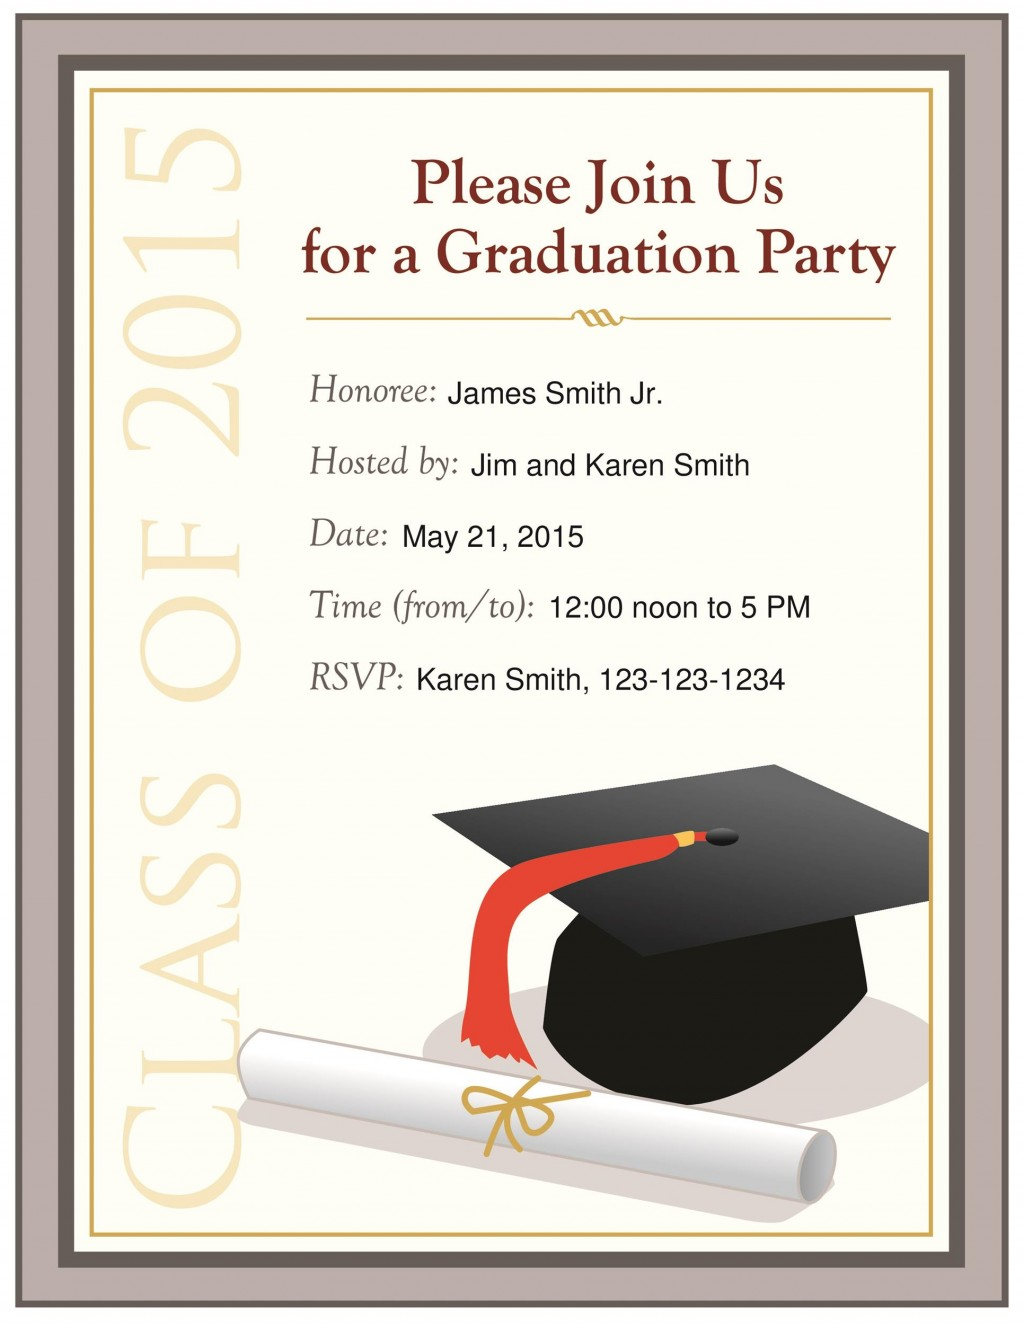 005 Archaicawful Graduation Party Invitation Template Idea  Microsoft Word 4 Per PageLarge